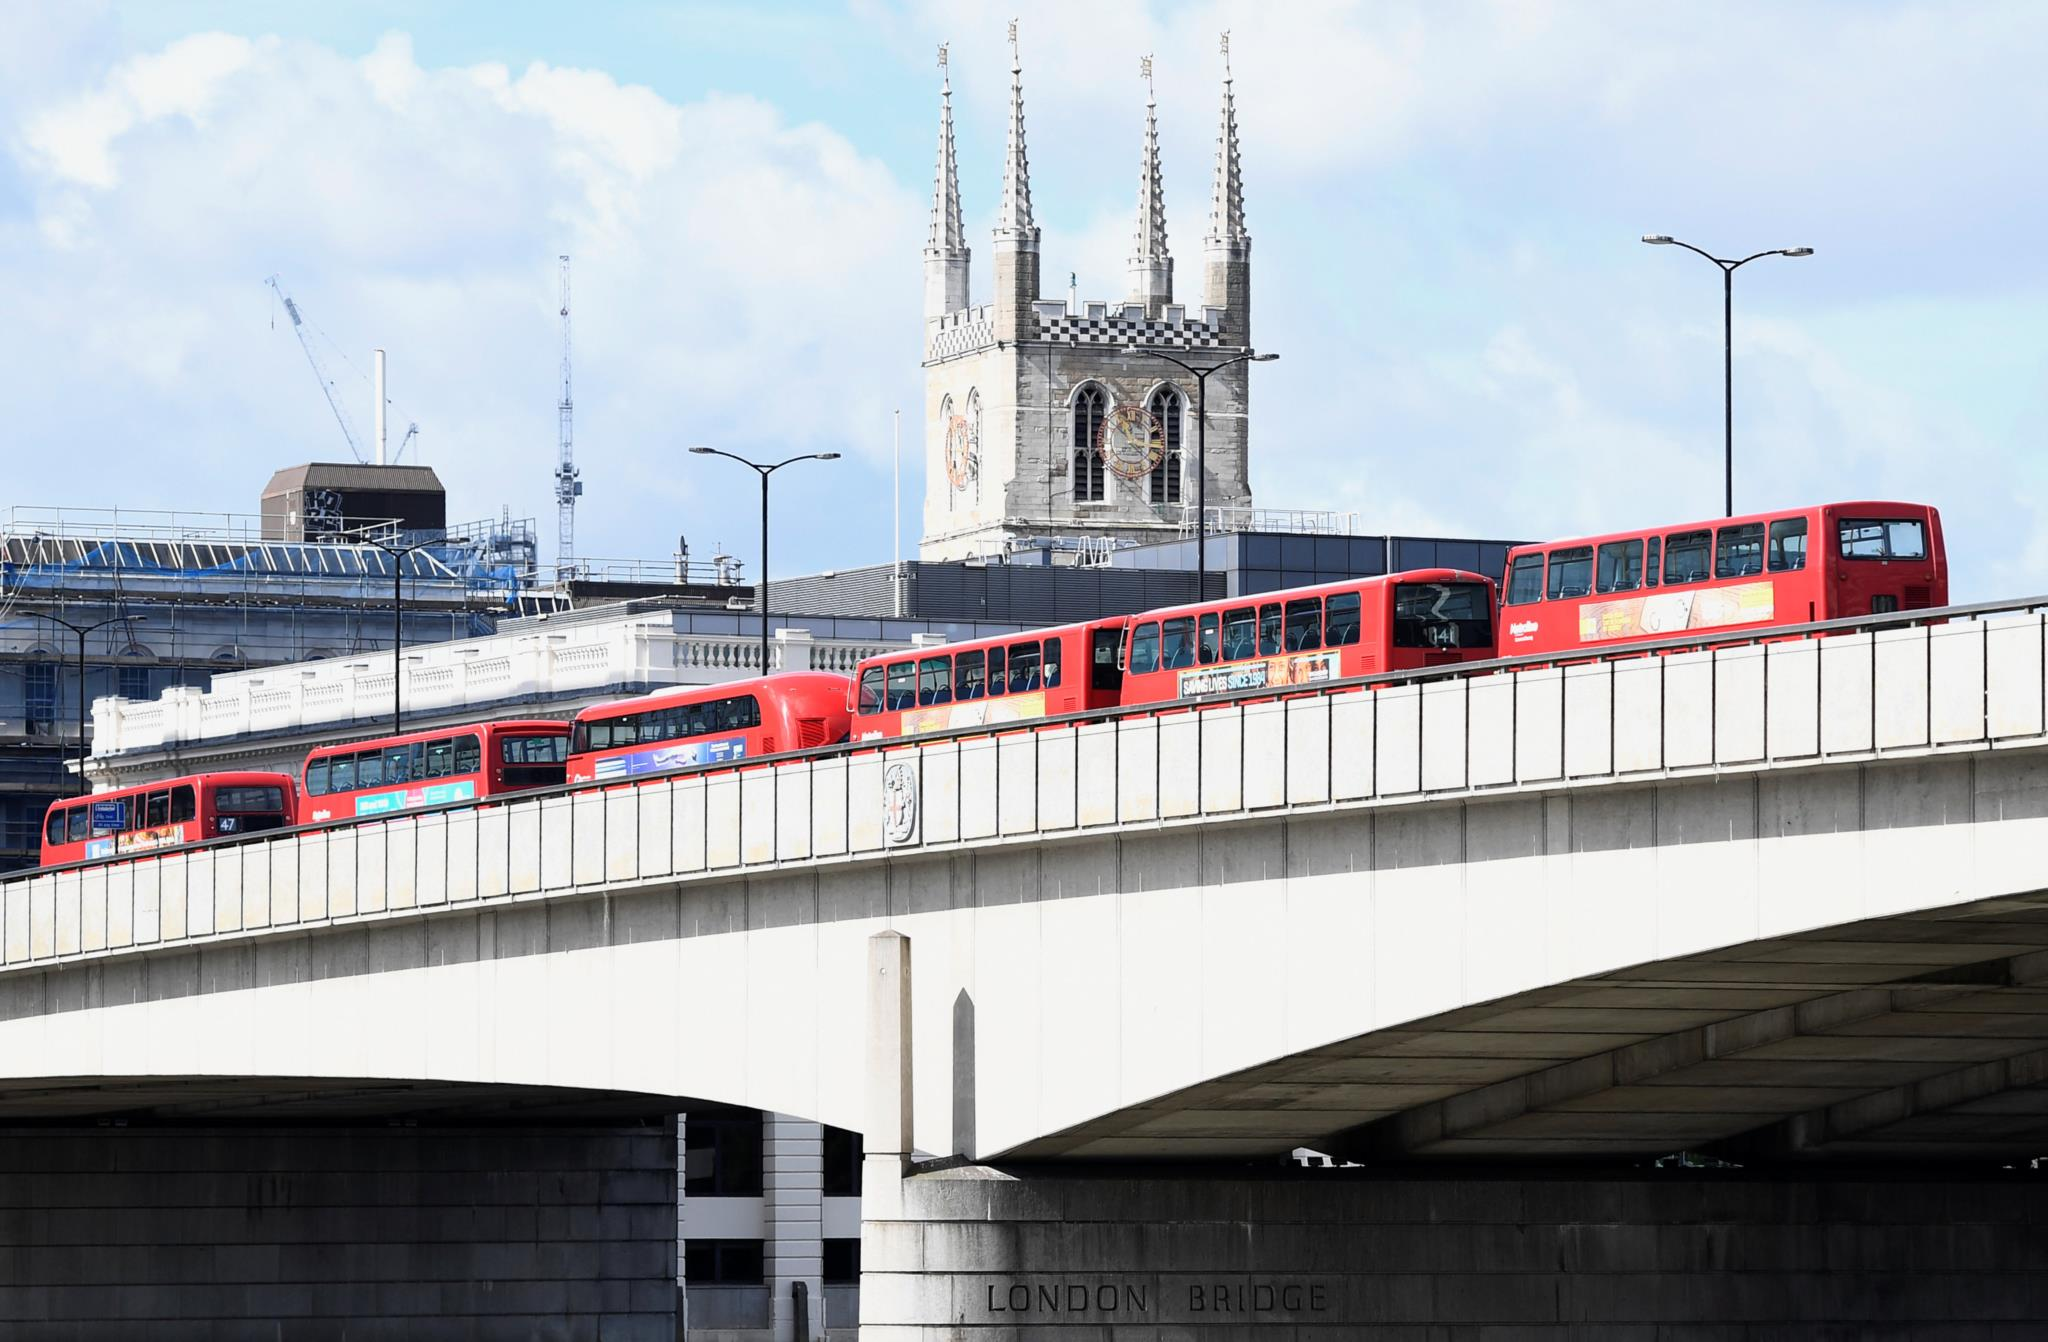 Abandoned buses are lined up on London Bridge after an attack left 7 people dead and dozens injured in London